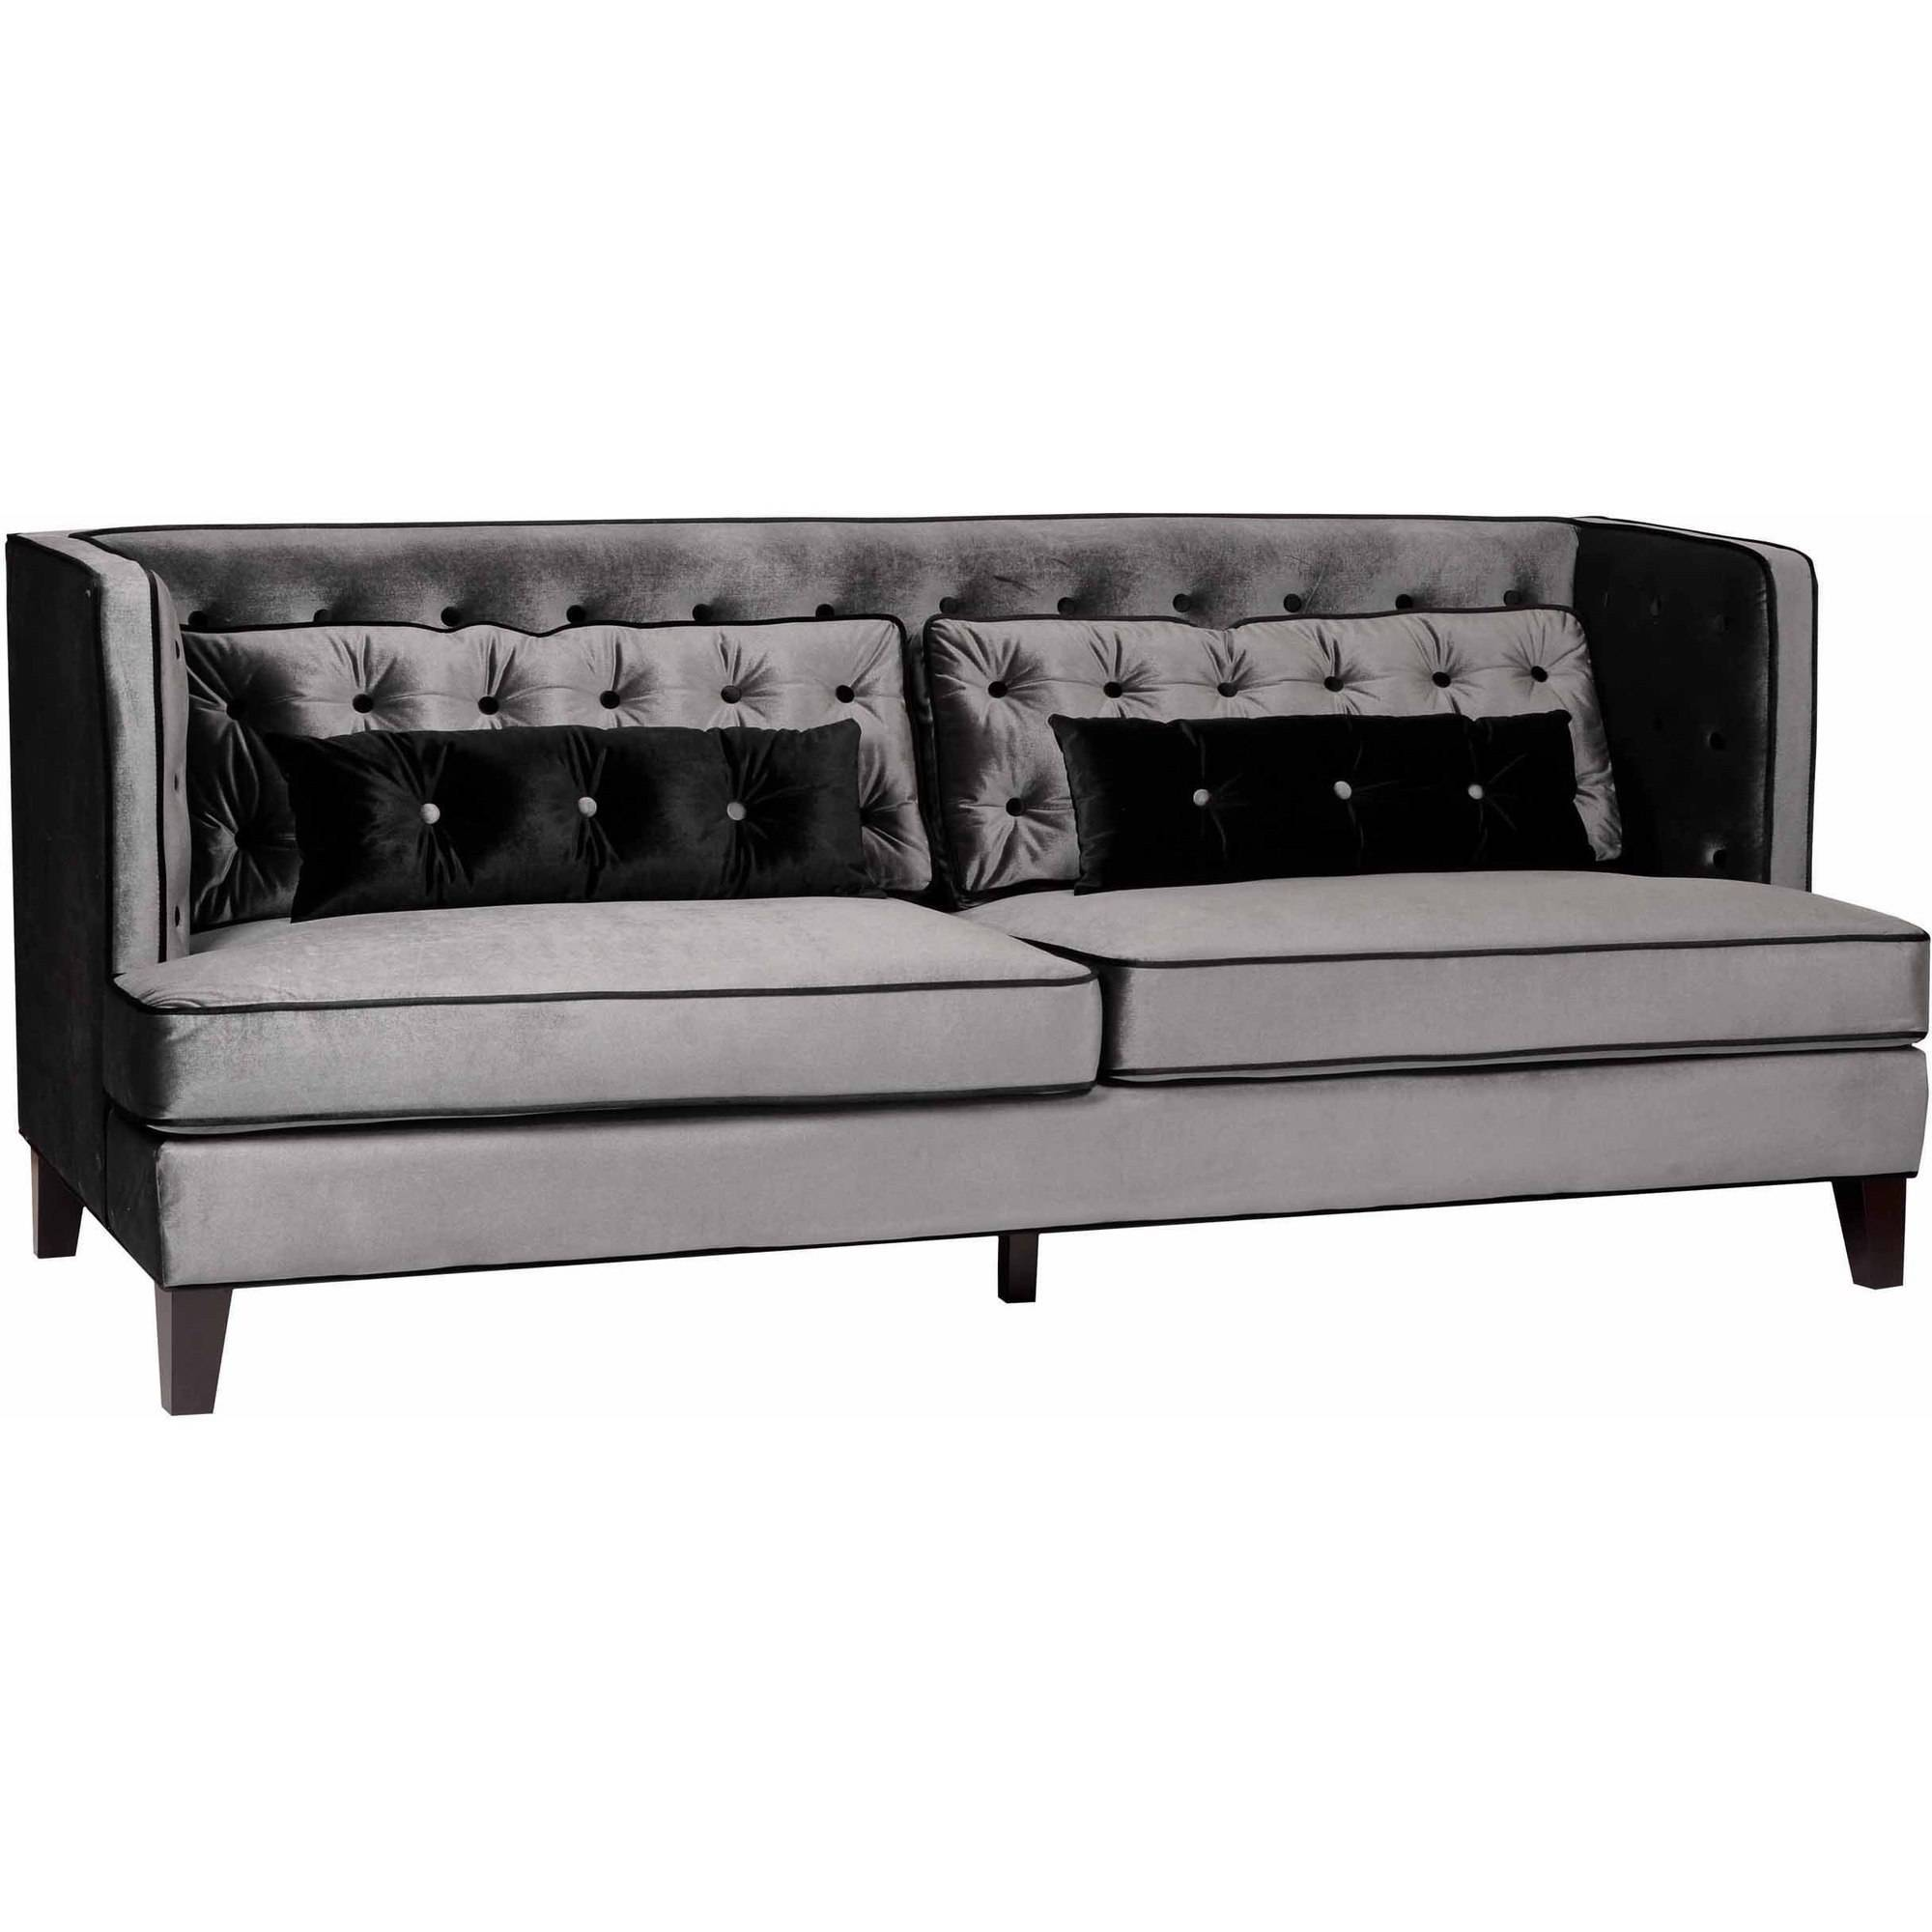 Armen Living Moulin Sofa, Gray Velvet with Black Piping